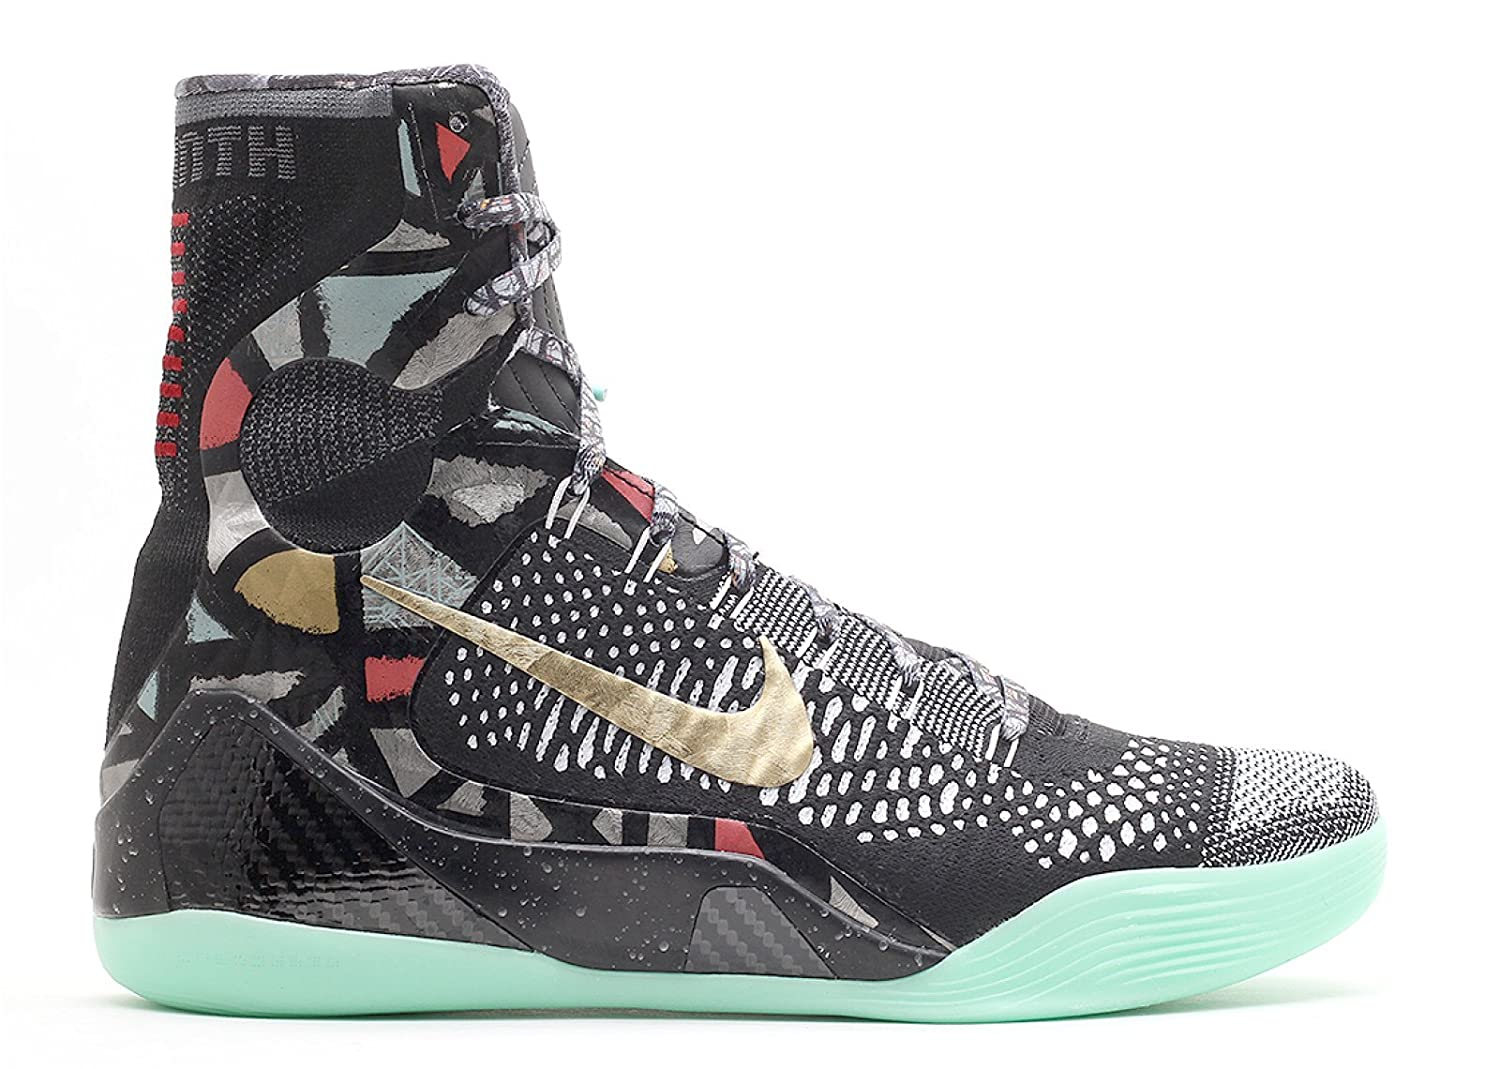 info for 18888 bf47a Amazon.com   Nike Kobe IX Elite Devotion Men s Basketball Shoes  Black Metallic Gold-White 630847-002   Basketball